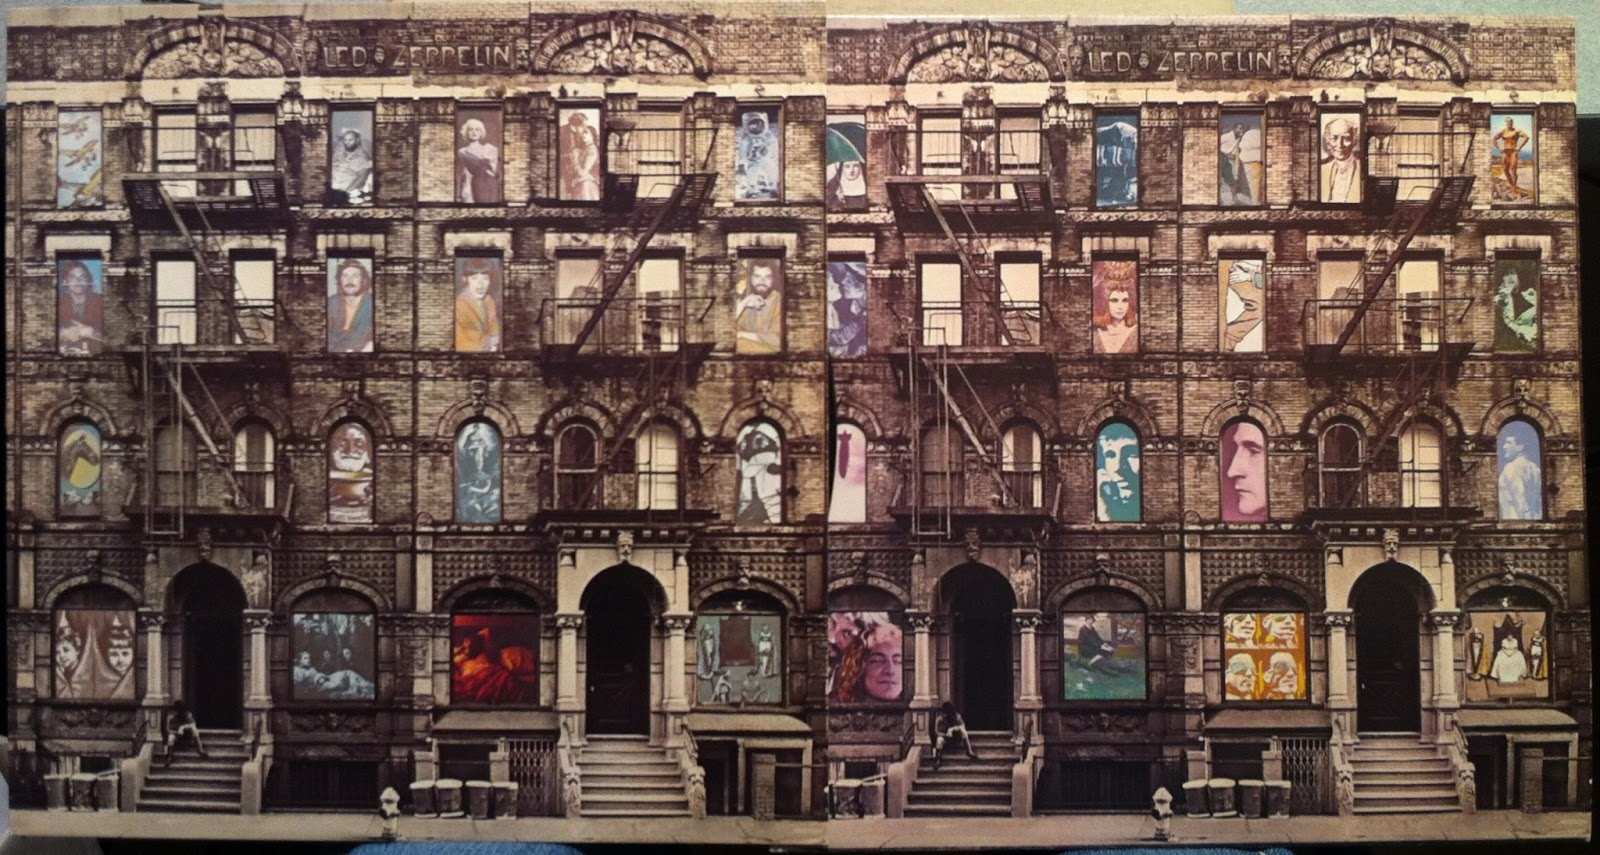 La cubierta de 'Physical Graffiti' extendida